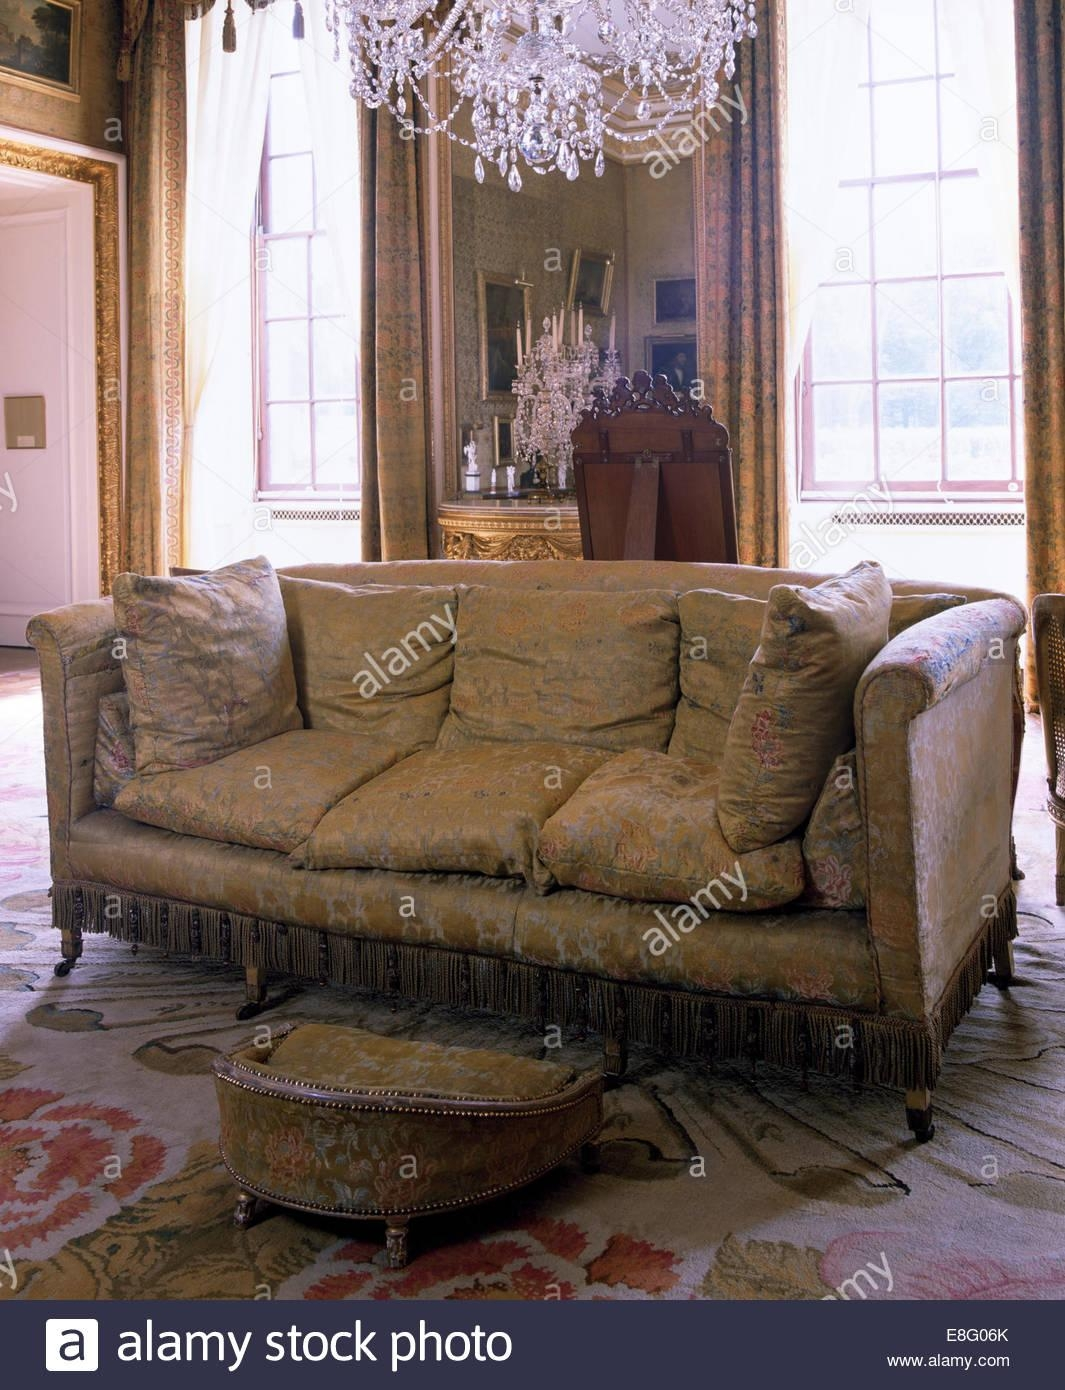 Brocade Sofa In Stately Home Drawing Room Stock Photo, Royalty Within Brocade Sofas (Image 12 of 20)